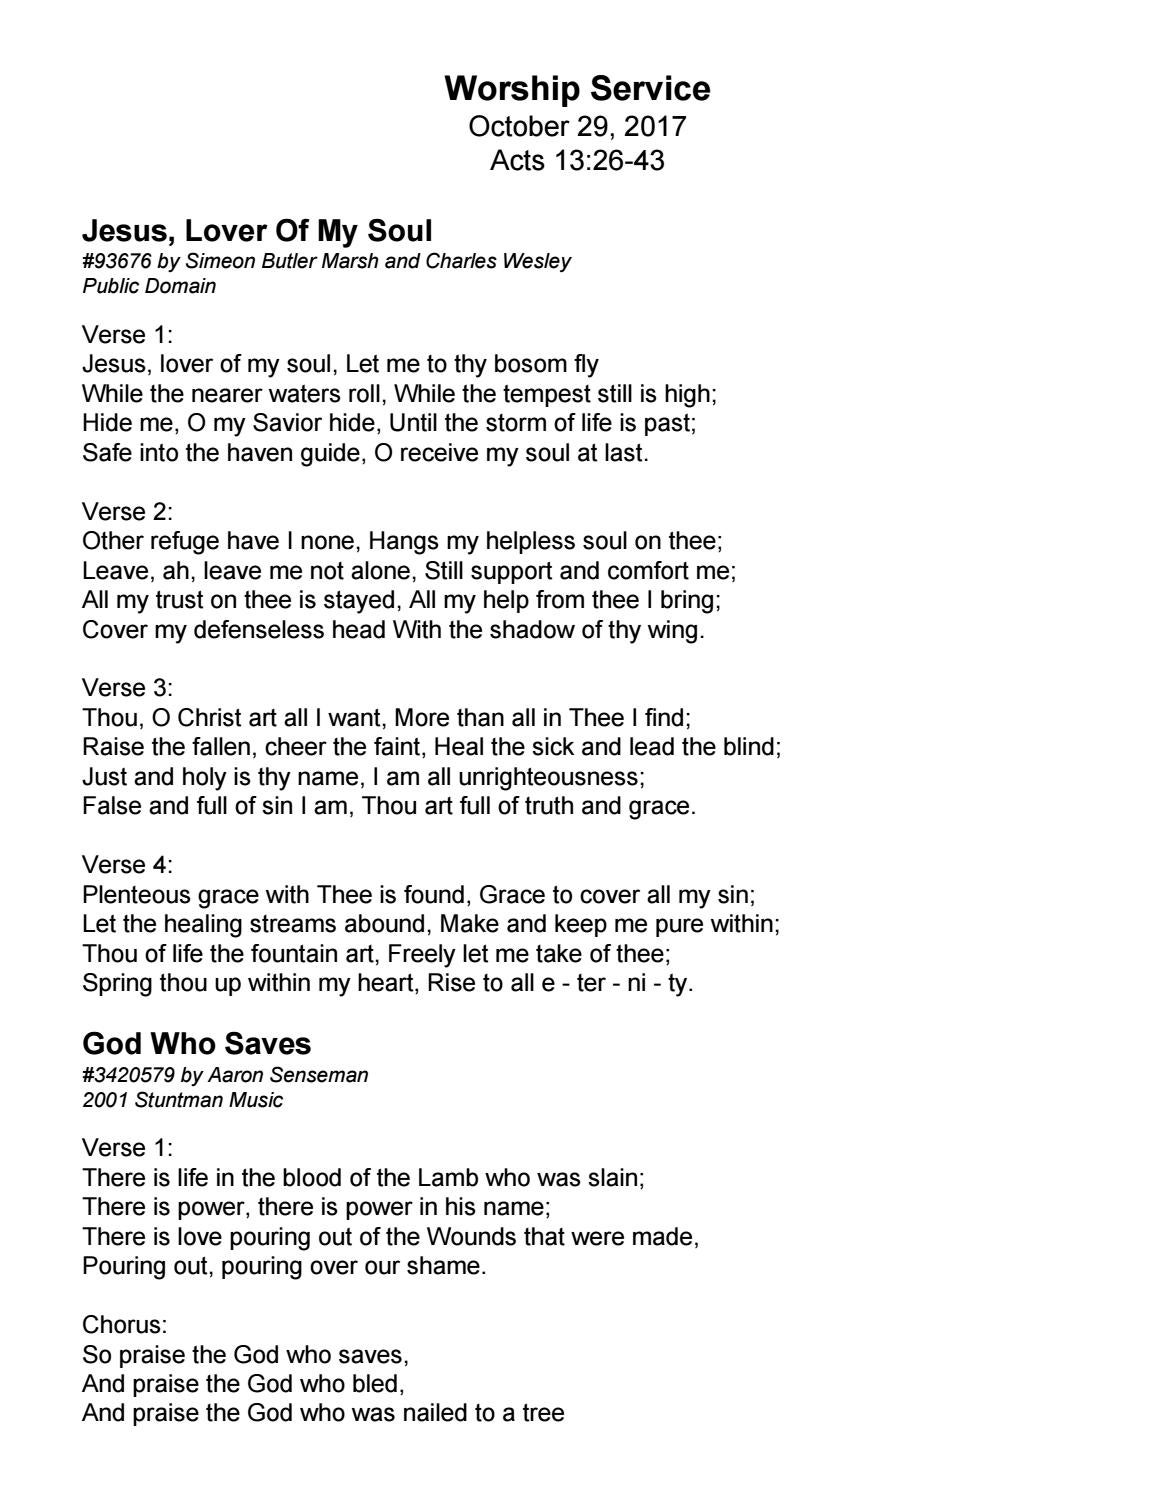 Song Lyrics from 10 29 17 Liturgy by Trinity Presbyterian Church - issuu